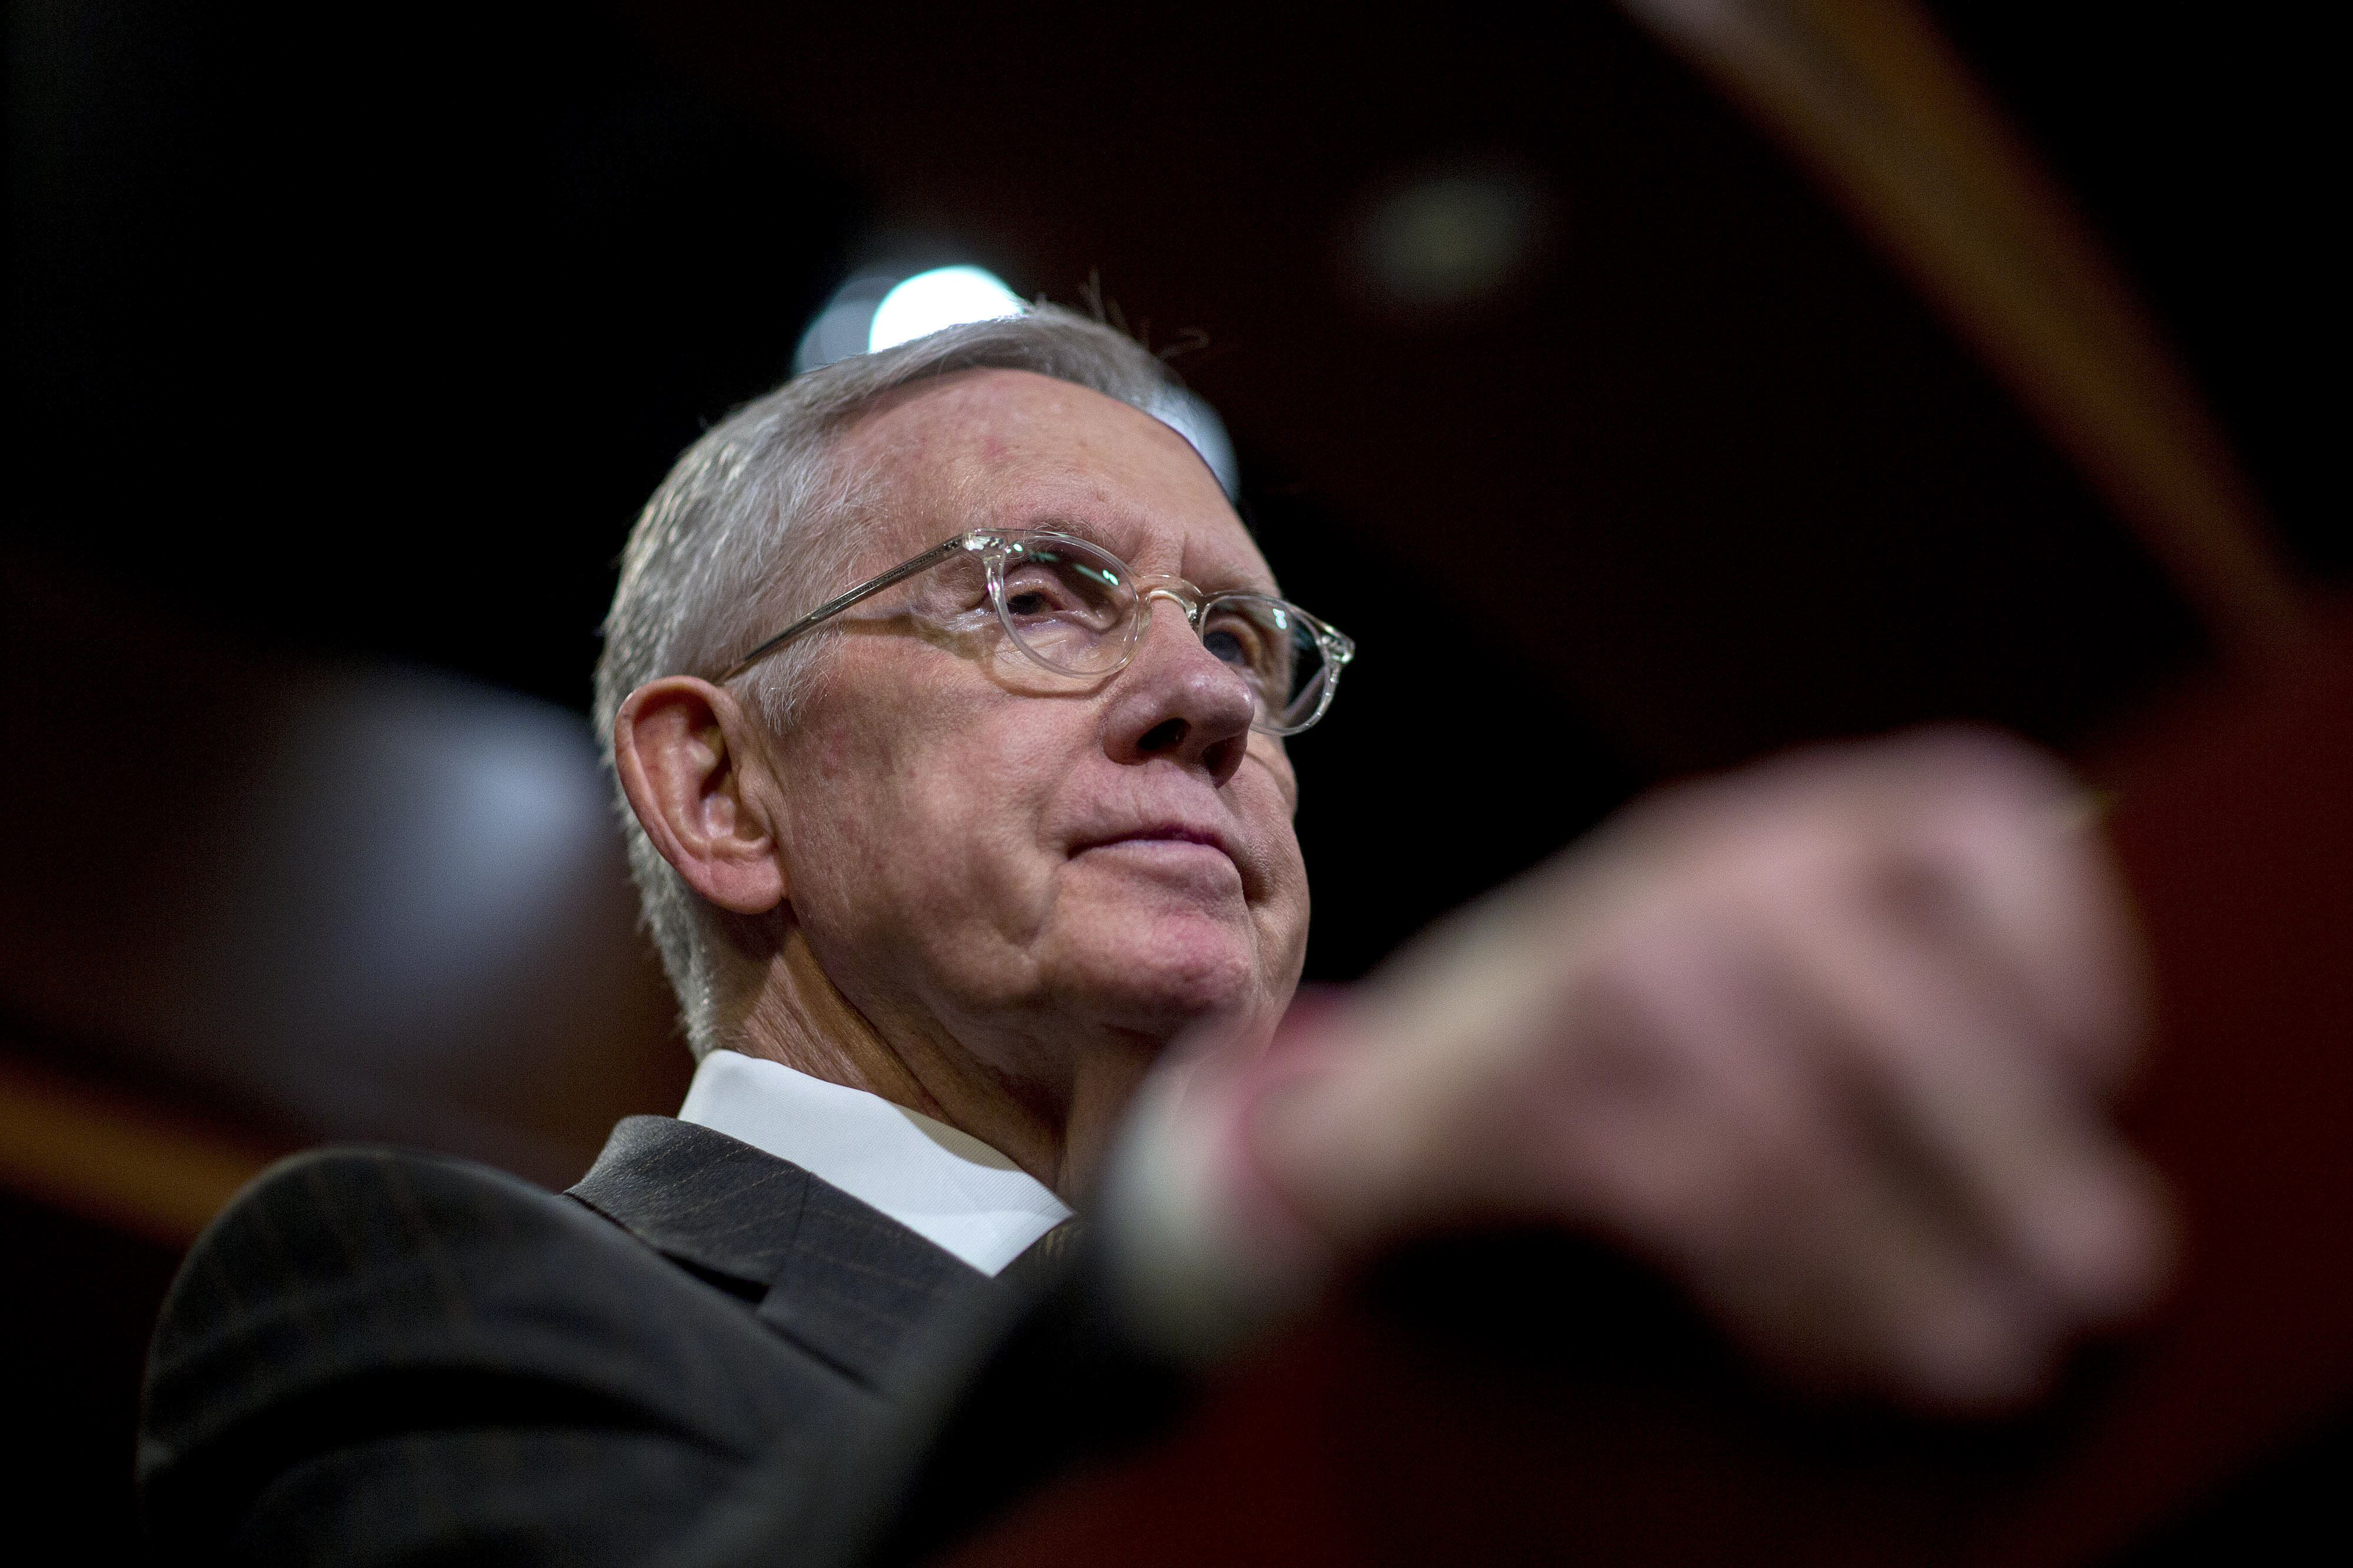 Senate Minority Leader Harry Reid, a Democrat from Nevada, listens to a question during a news conference at the U.S. Capitol in Washington, D.C., U.S., on Thursday, Nov. 19, 2015. Senate Democrats announced a new push to ensure that Islamic State terrorists are not able to slip into the United States through the Visa Waiver Program. Photographer: Andrew Harrer/Bloomberg via Getty Images